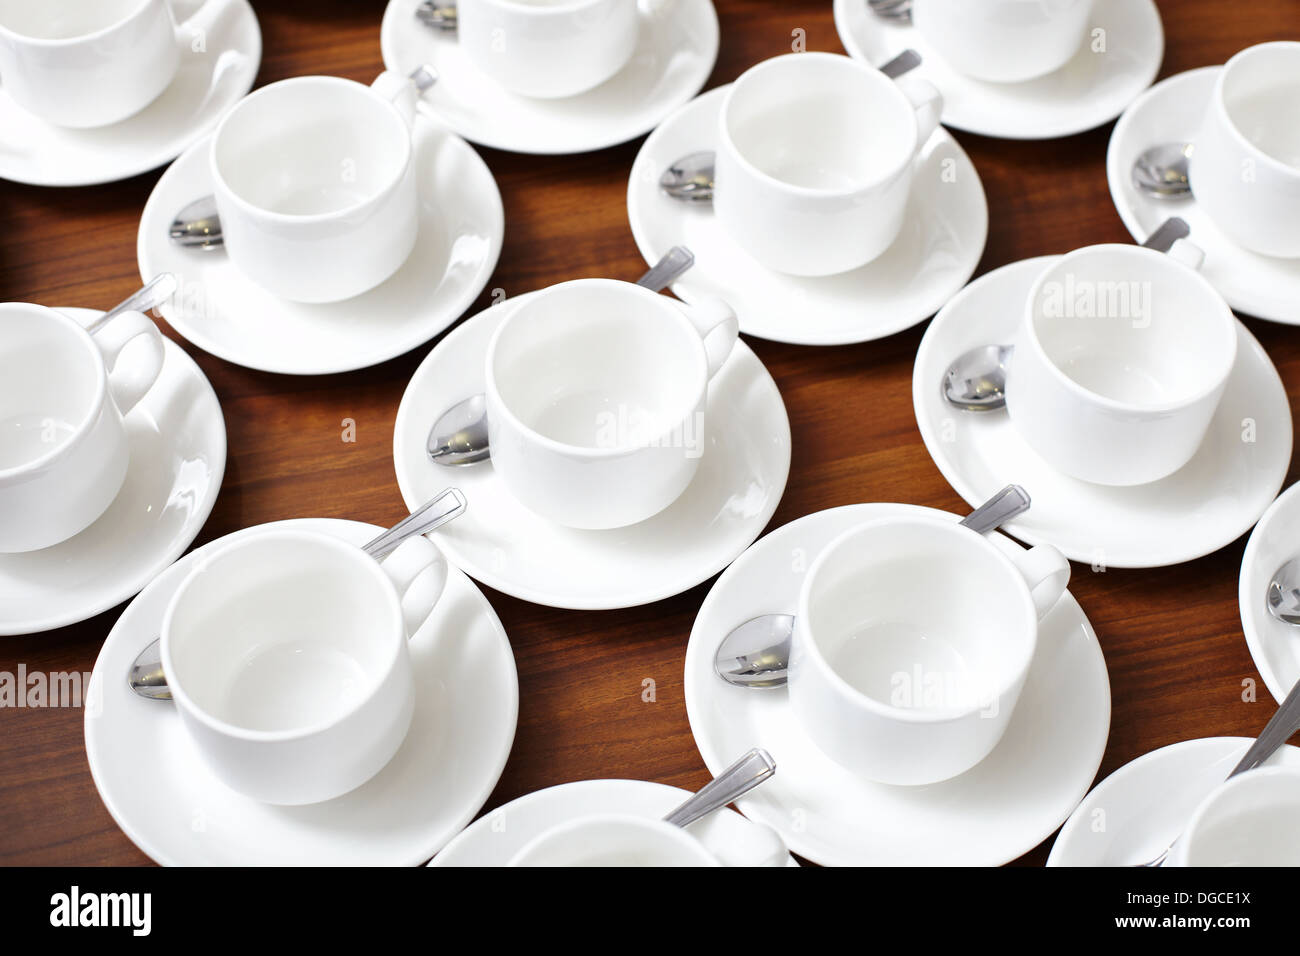 Ordered group of empty cups and saucers Stock Photo